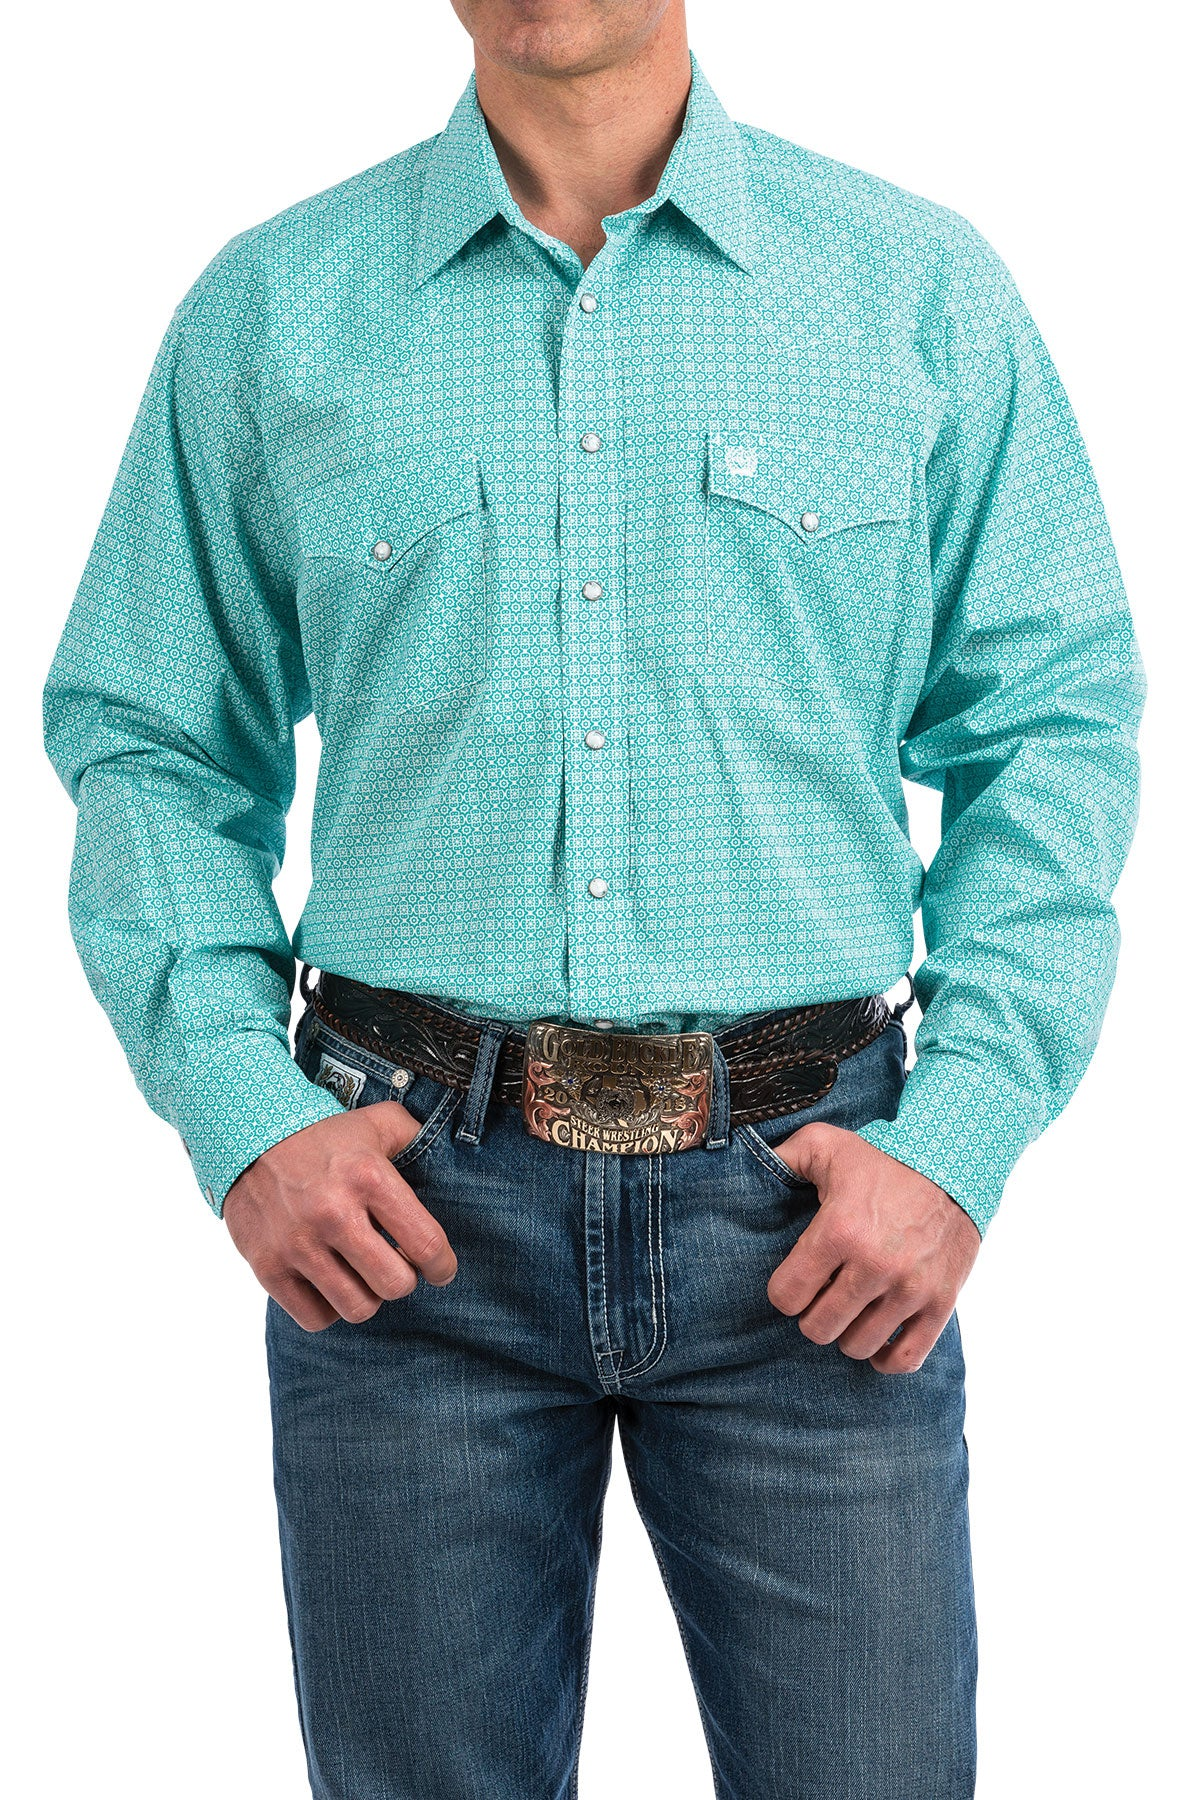 Cinch Turquoise Print Men's Pearl Snap Shirt